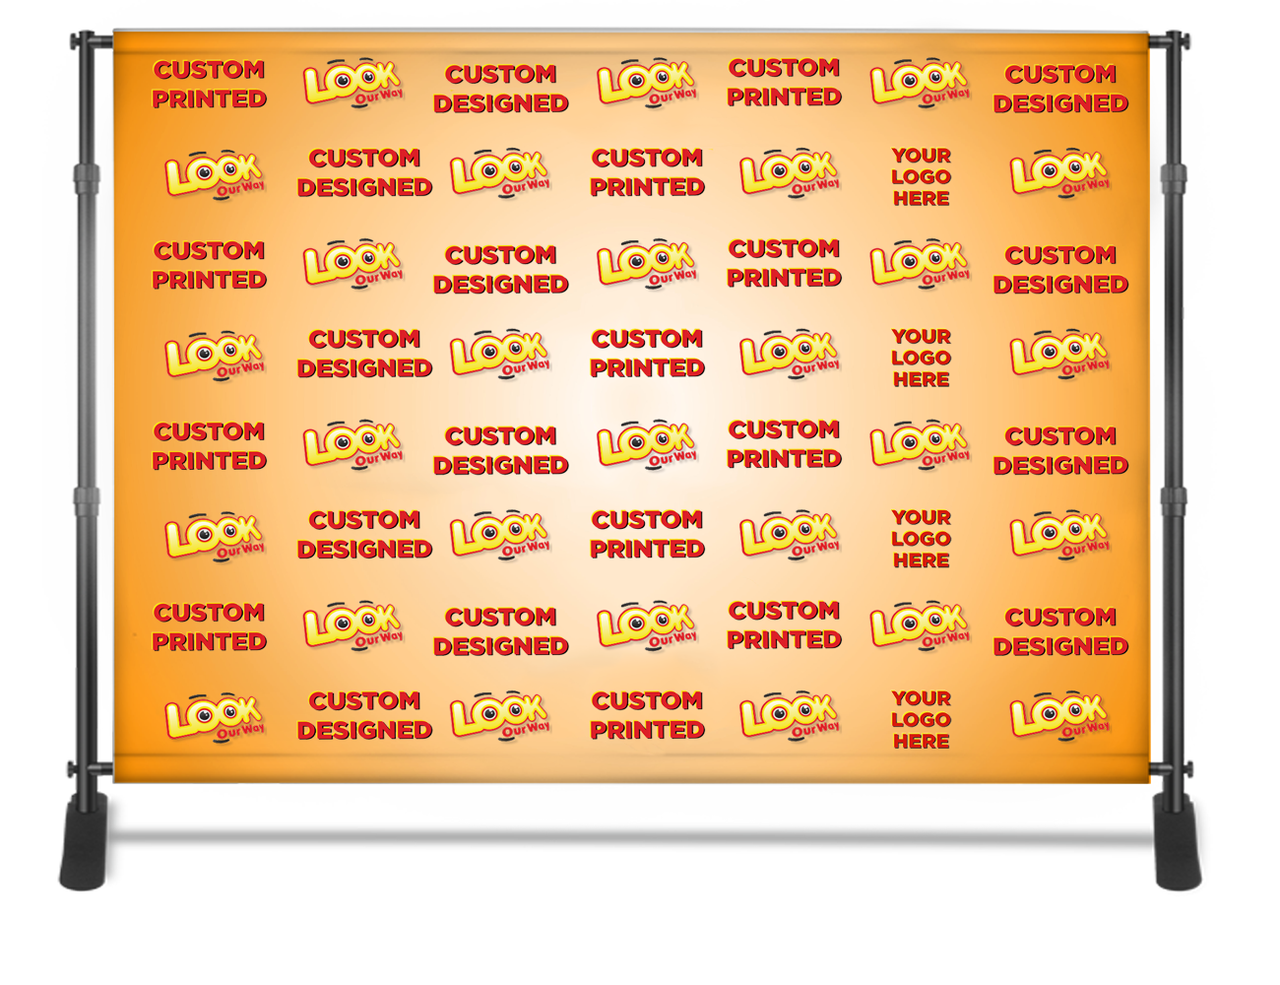 Custom_Printed_Step_and_Repeat_Backdrop_Banner_10x8__20674.1492556299.1280.1280.png